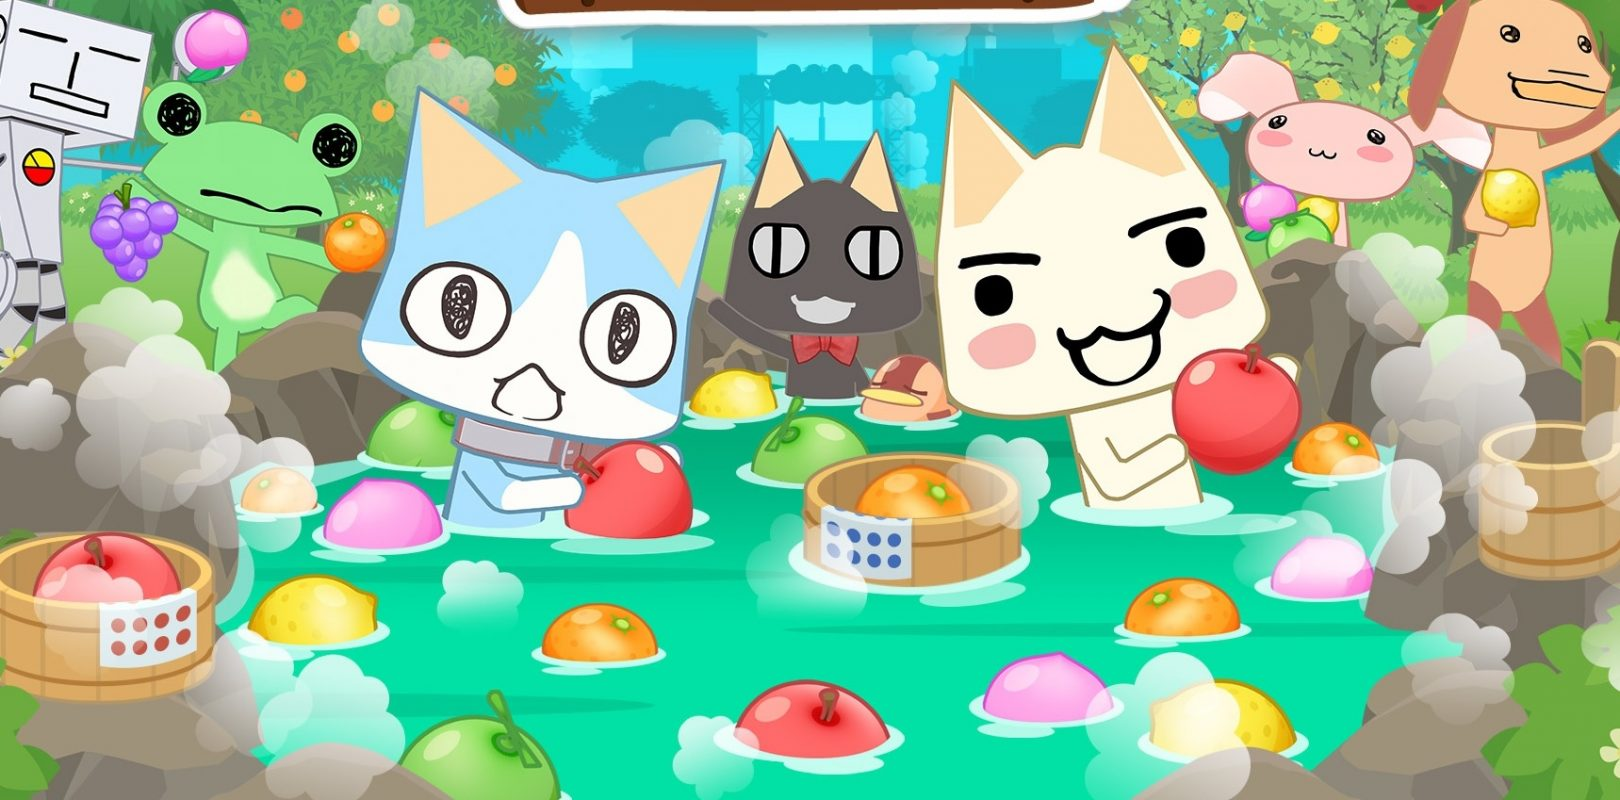 The latest game featuring Sony's cat mascot Toro is getting localized this month screenshot